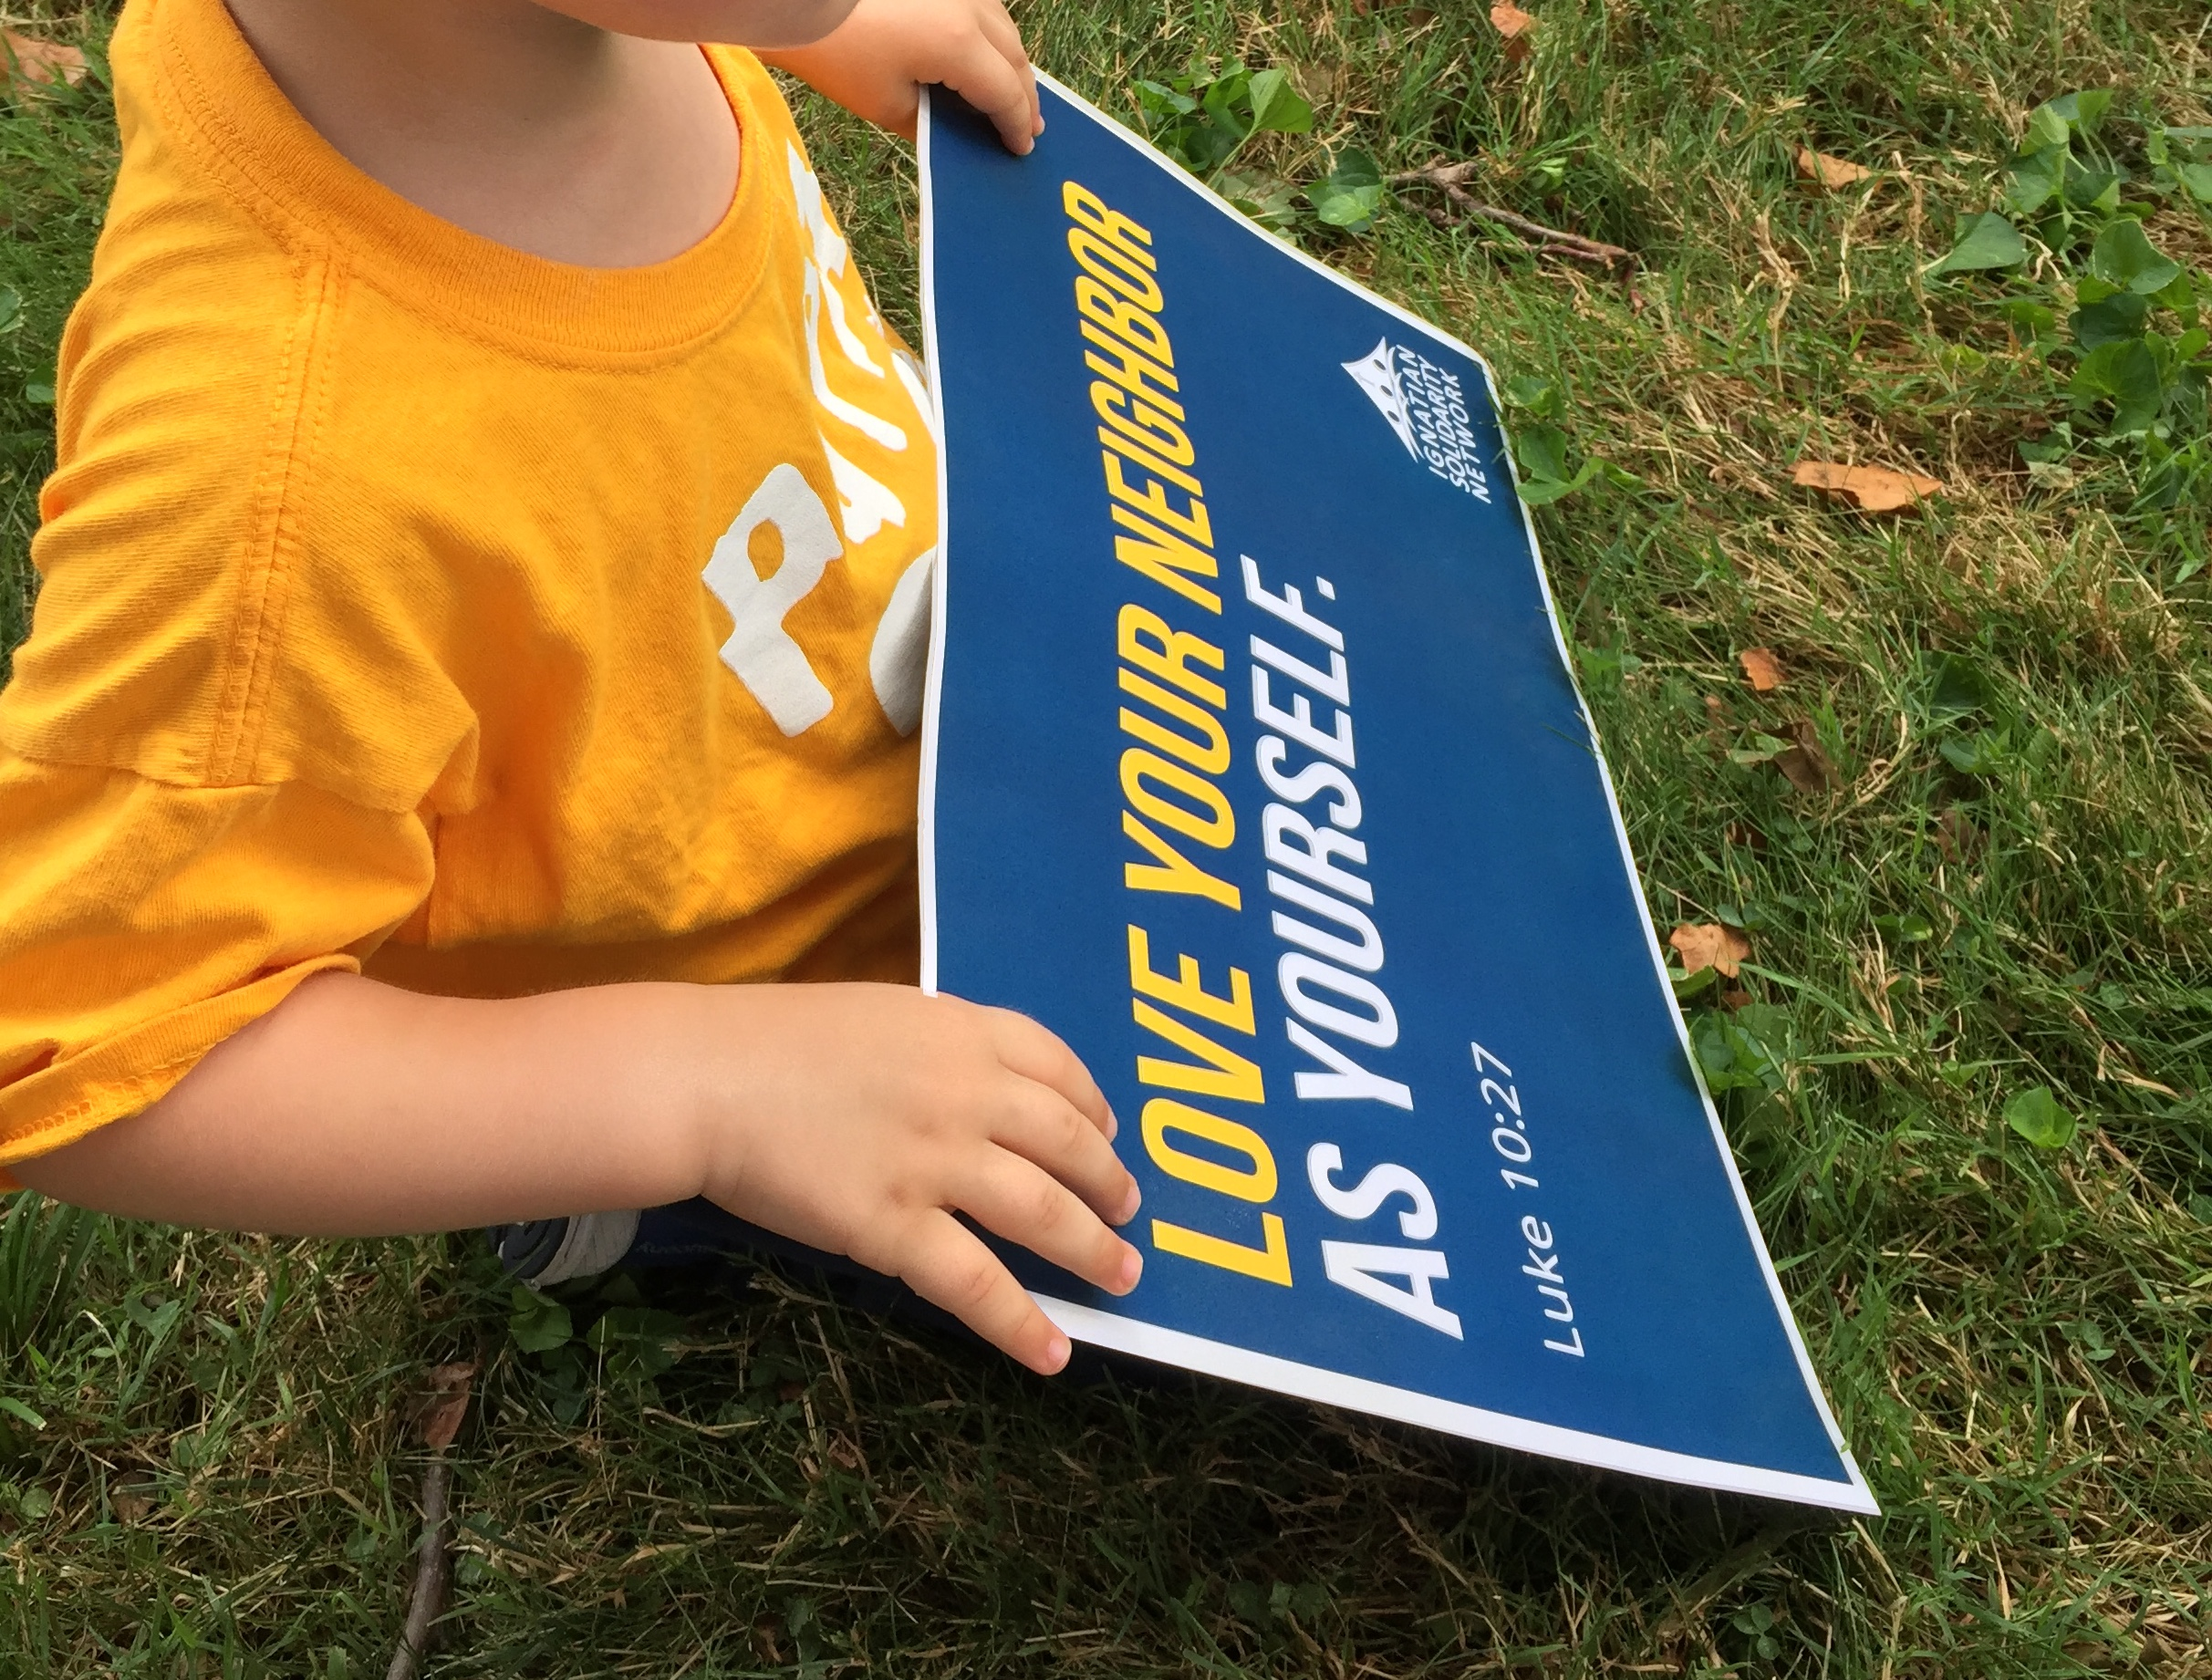 Why I took my 3-year-old to the Catholic Day of Action for